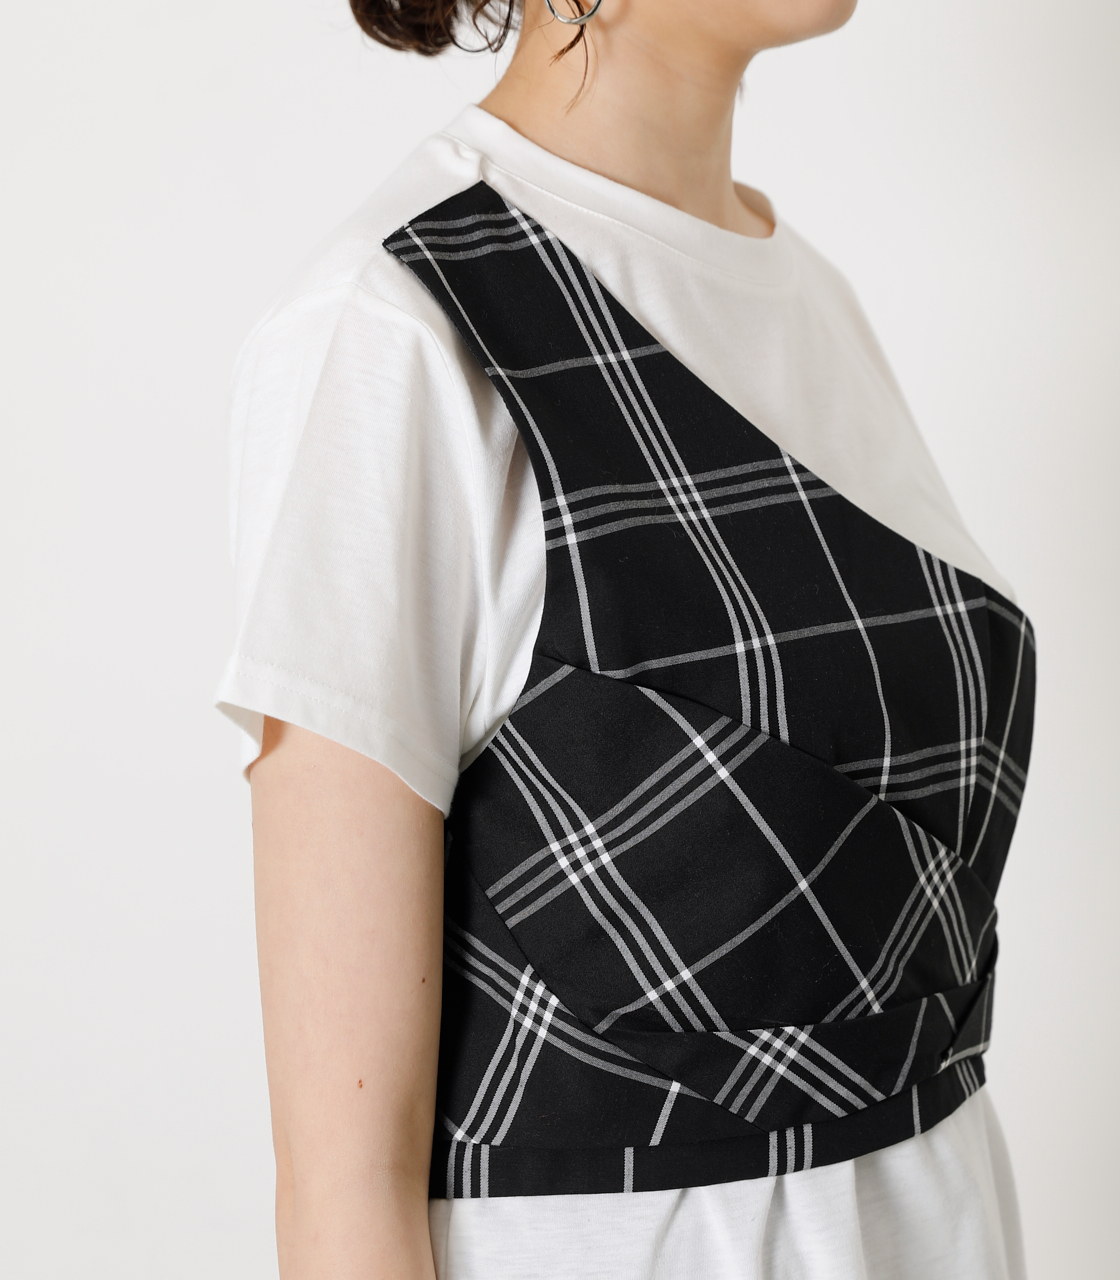 ONESHOULDER CHECK BUSTIER TOPS/ワンショルダーチェックビジタートップス 詳細画像 柄BLK 8